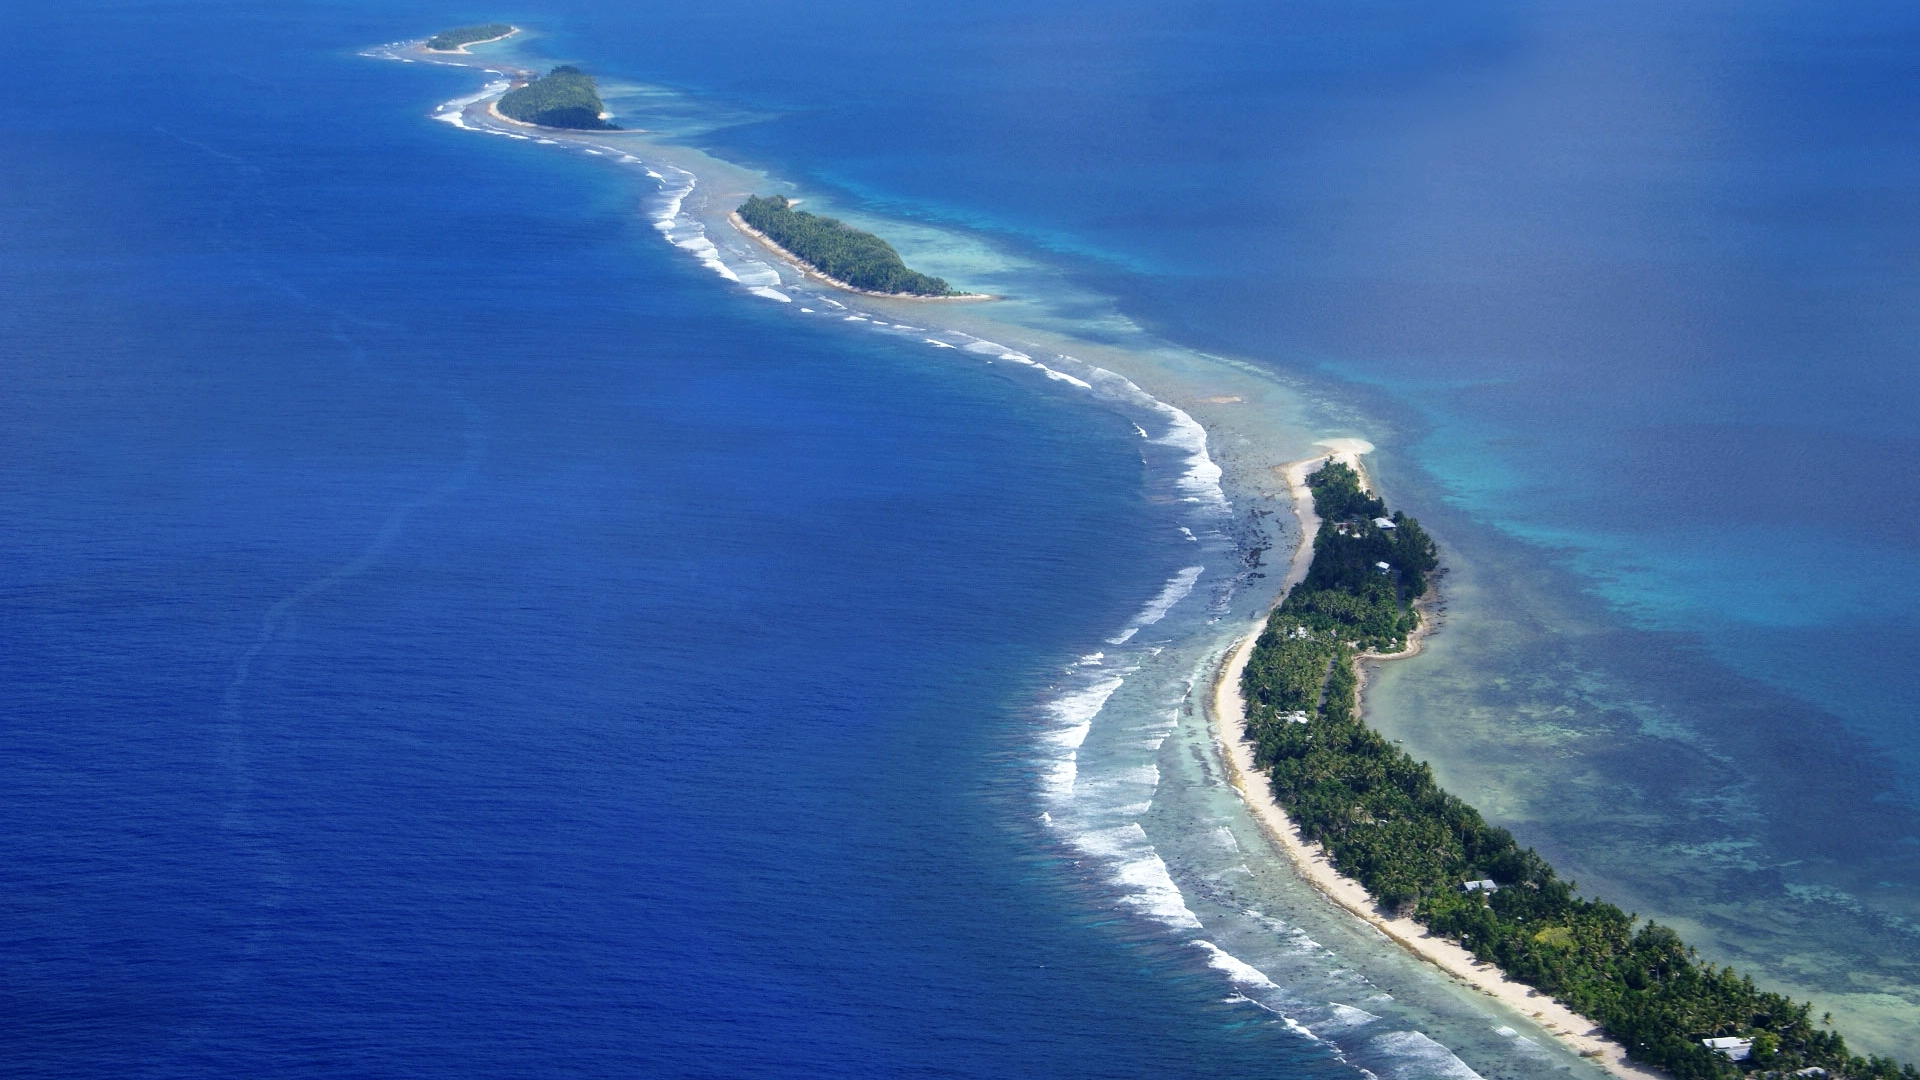 Aerial view of Fogafale, Funafuti. Photo: Bakhodir Burkhanov/UNDP